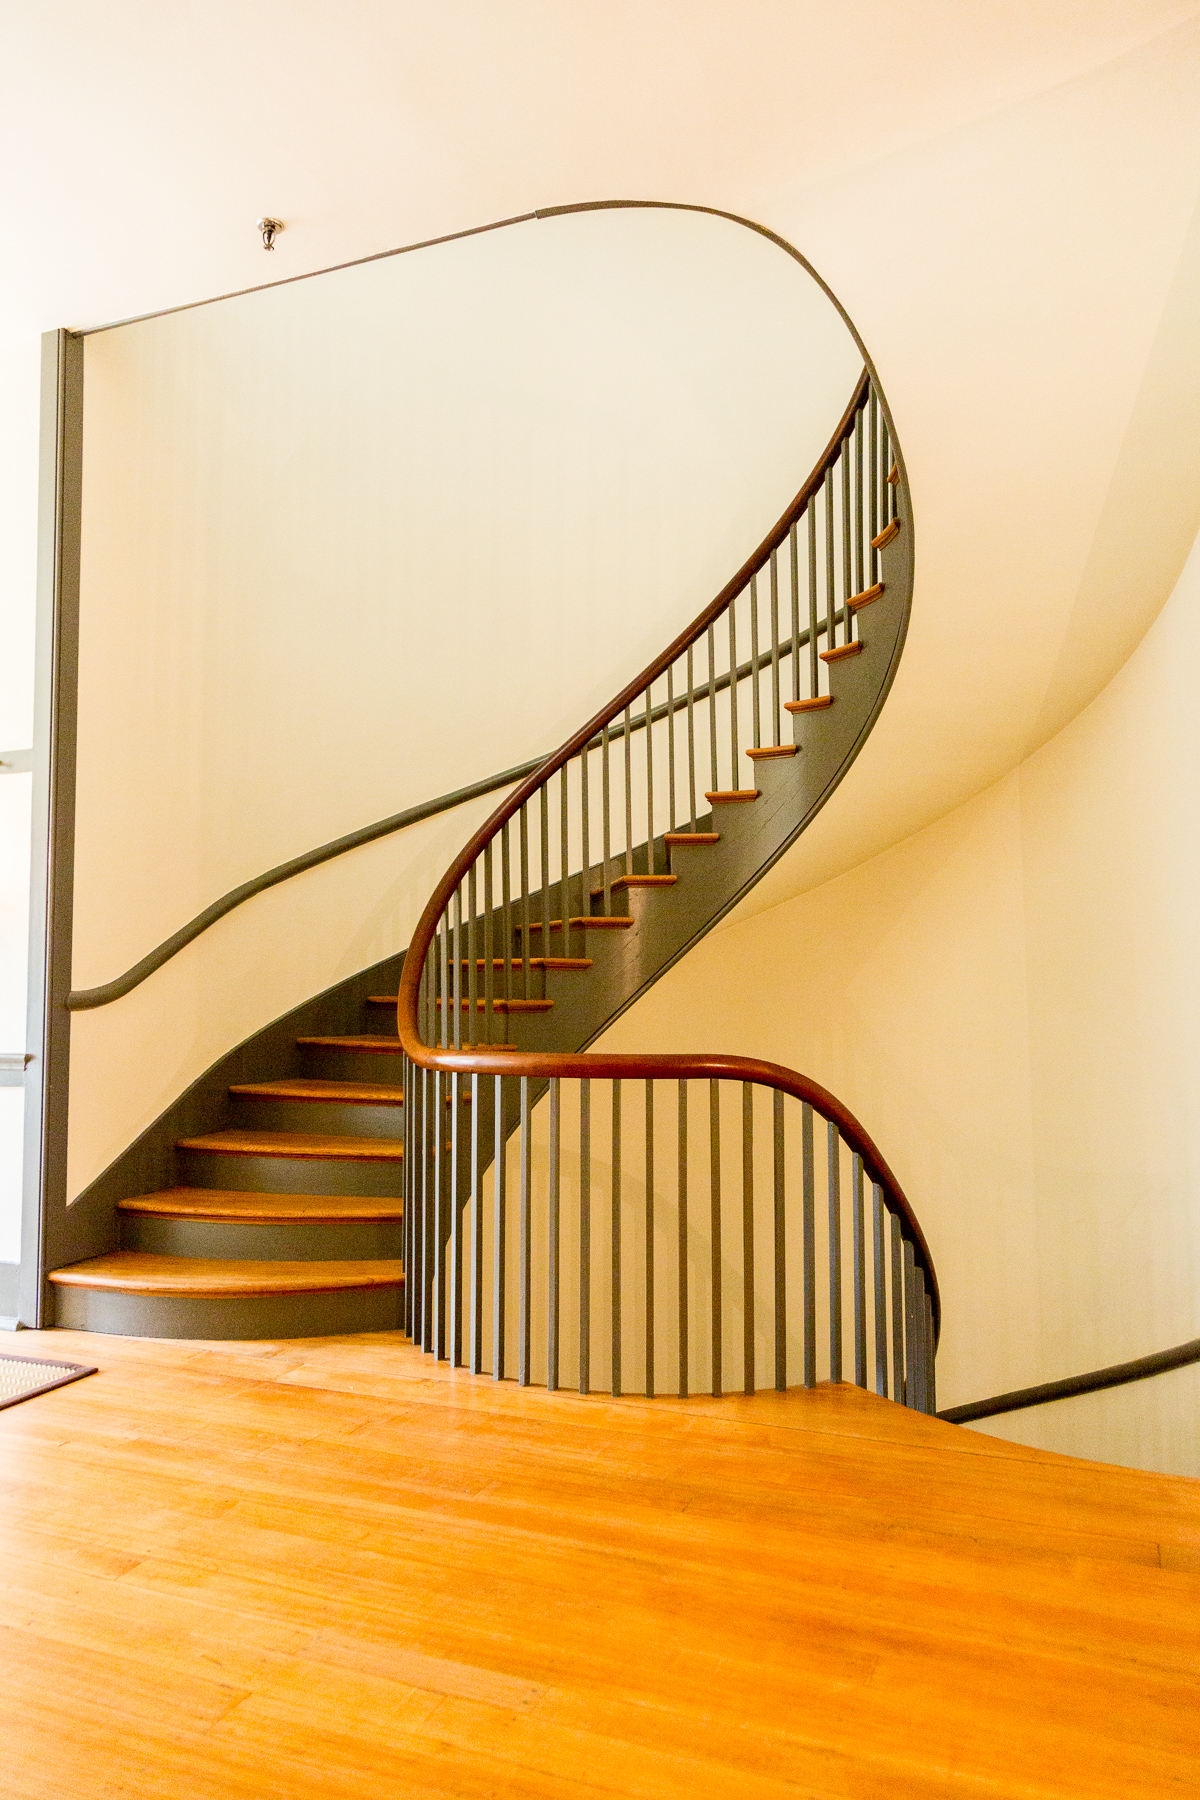 Micajah Burnett's winding three story double spiral staircase is one of the most beautiful feat's of woodworking we've ever seen. / Image: Daniel Smyth